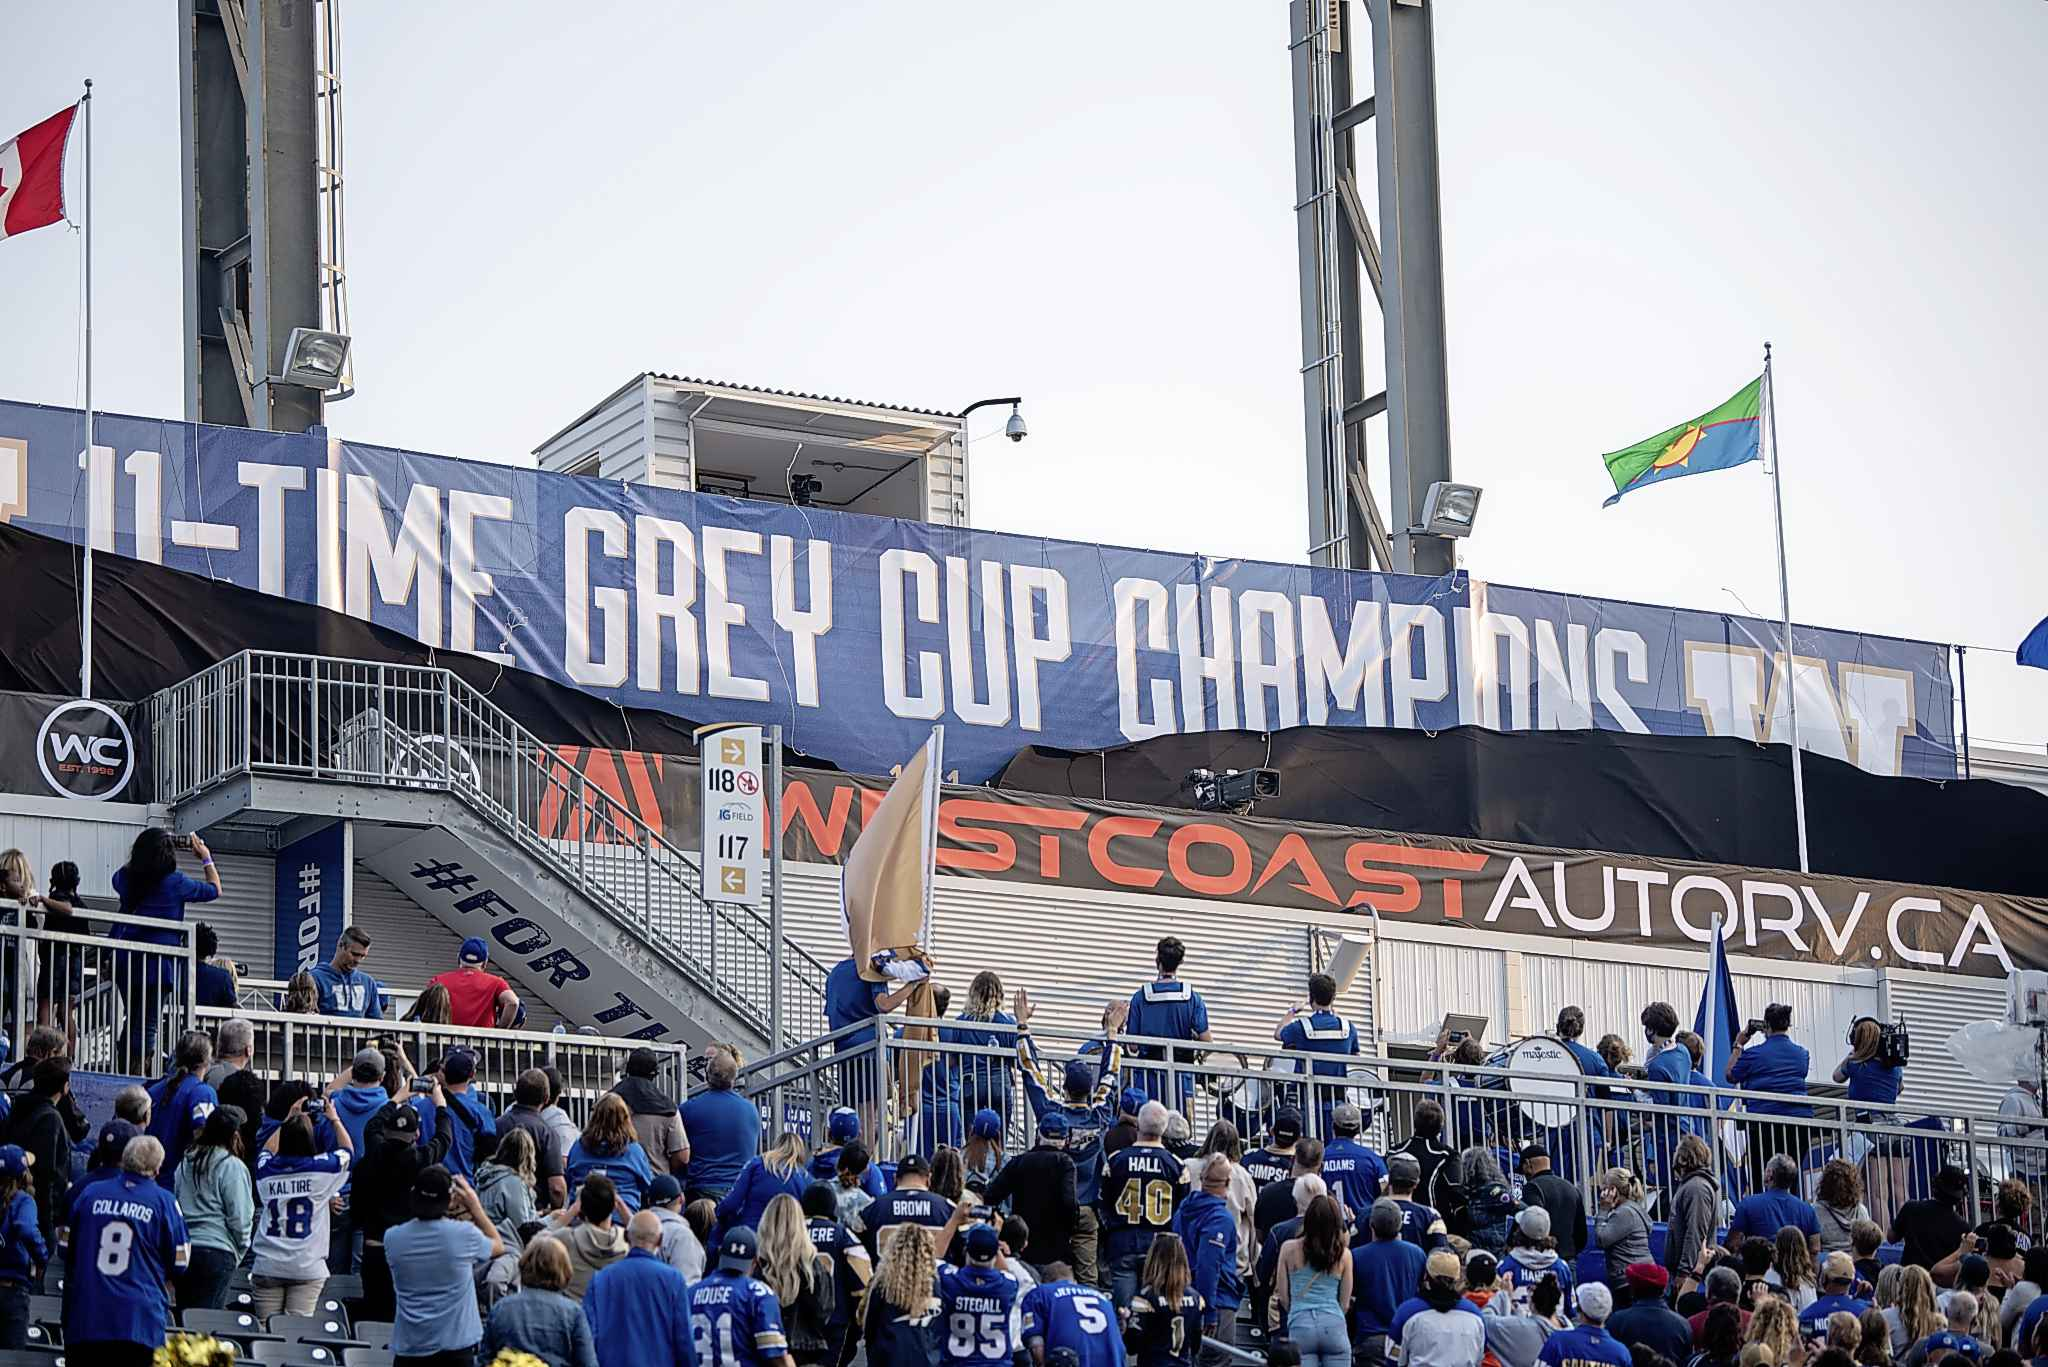 The Winnipeg Blue Bombers unveil their 2019 Grey Cup banner at IG Field during the opening game of the 2021 CFL season. (Alex Lupul / Winnipeg Free Press files)